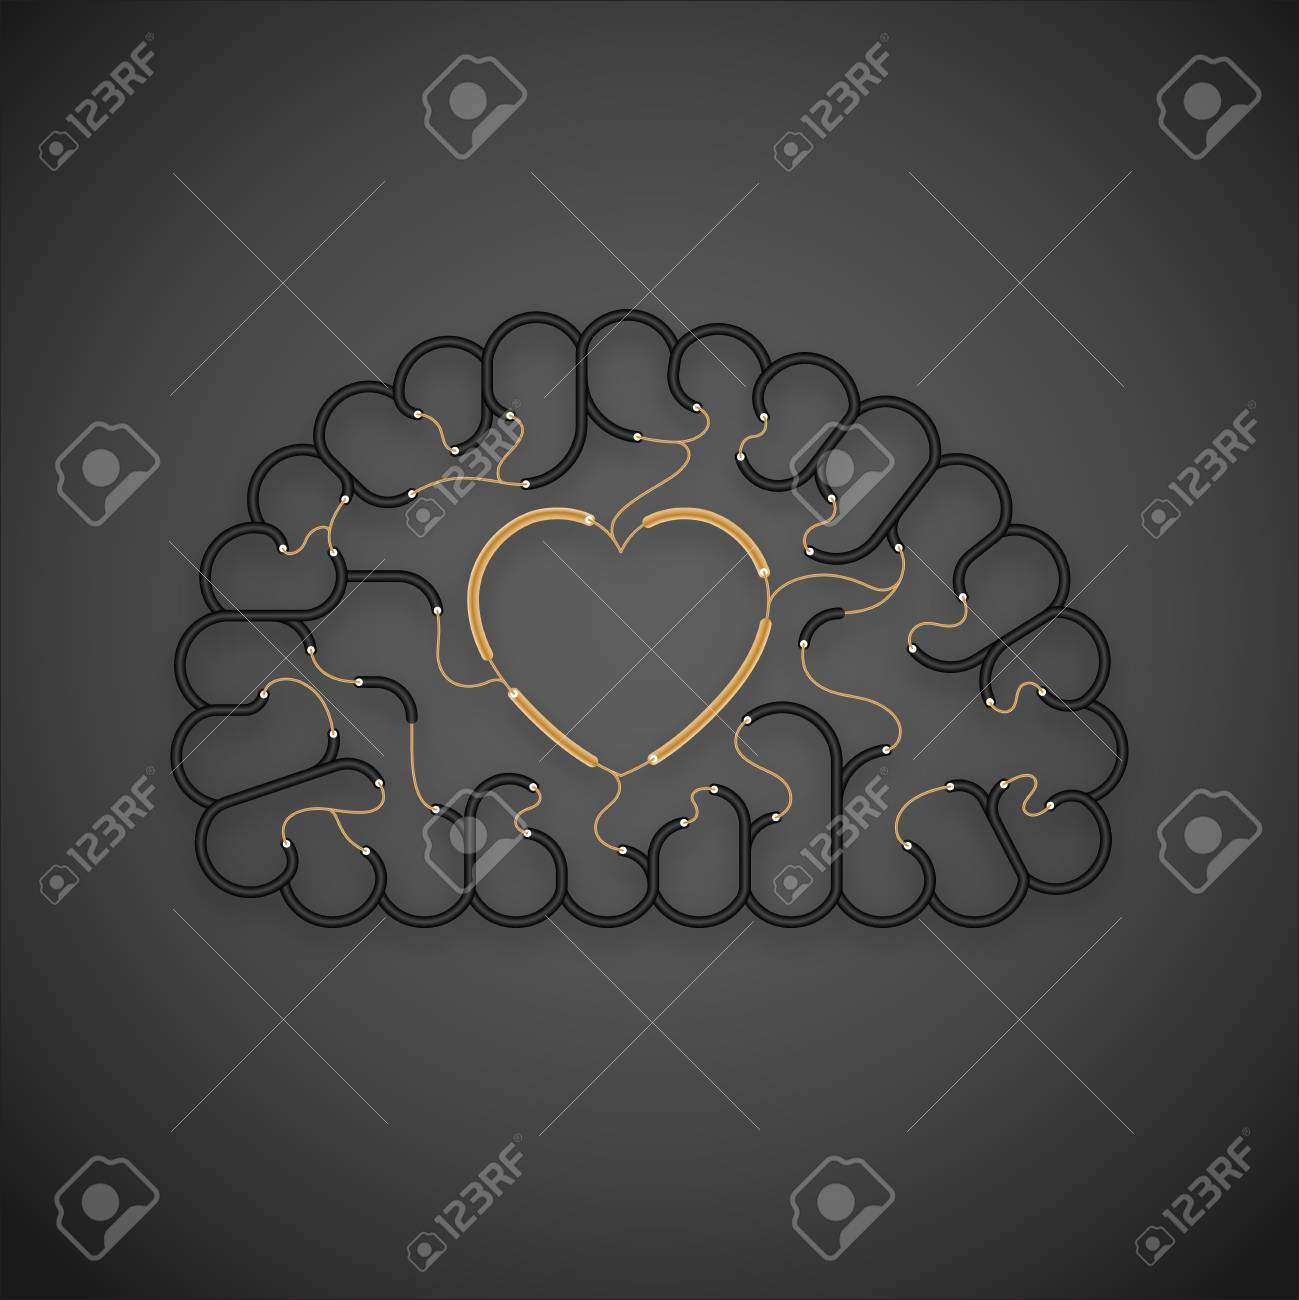 Wire Heart Sign Data Metering Circuit Databasecircuit Schematics Diagrams And Projects Electric Cable Brain Black Color Love Concept Design With Rh 123rf Com Garland